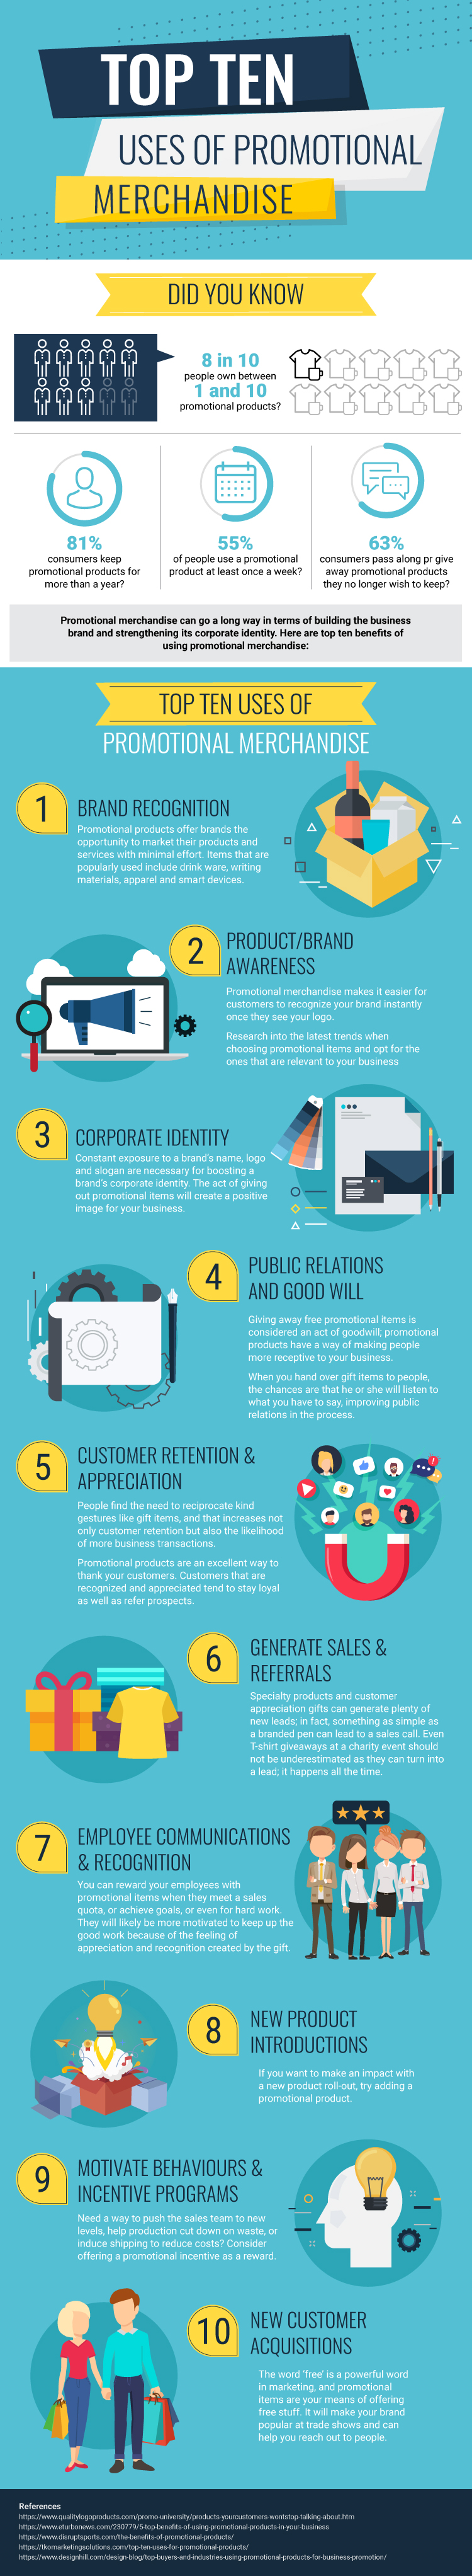 Top 10 Uses of Promotional Merchandise #infographic